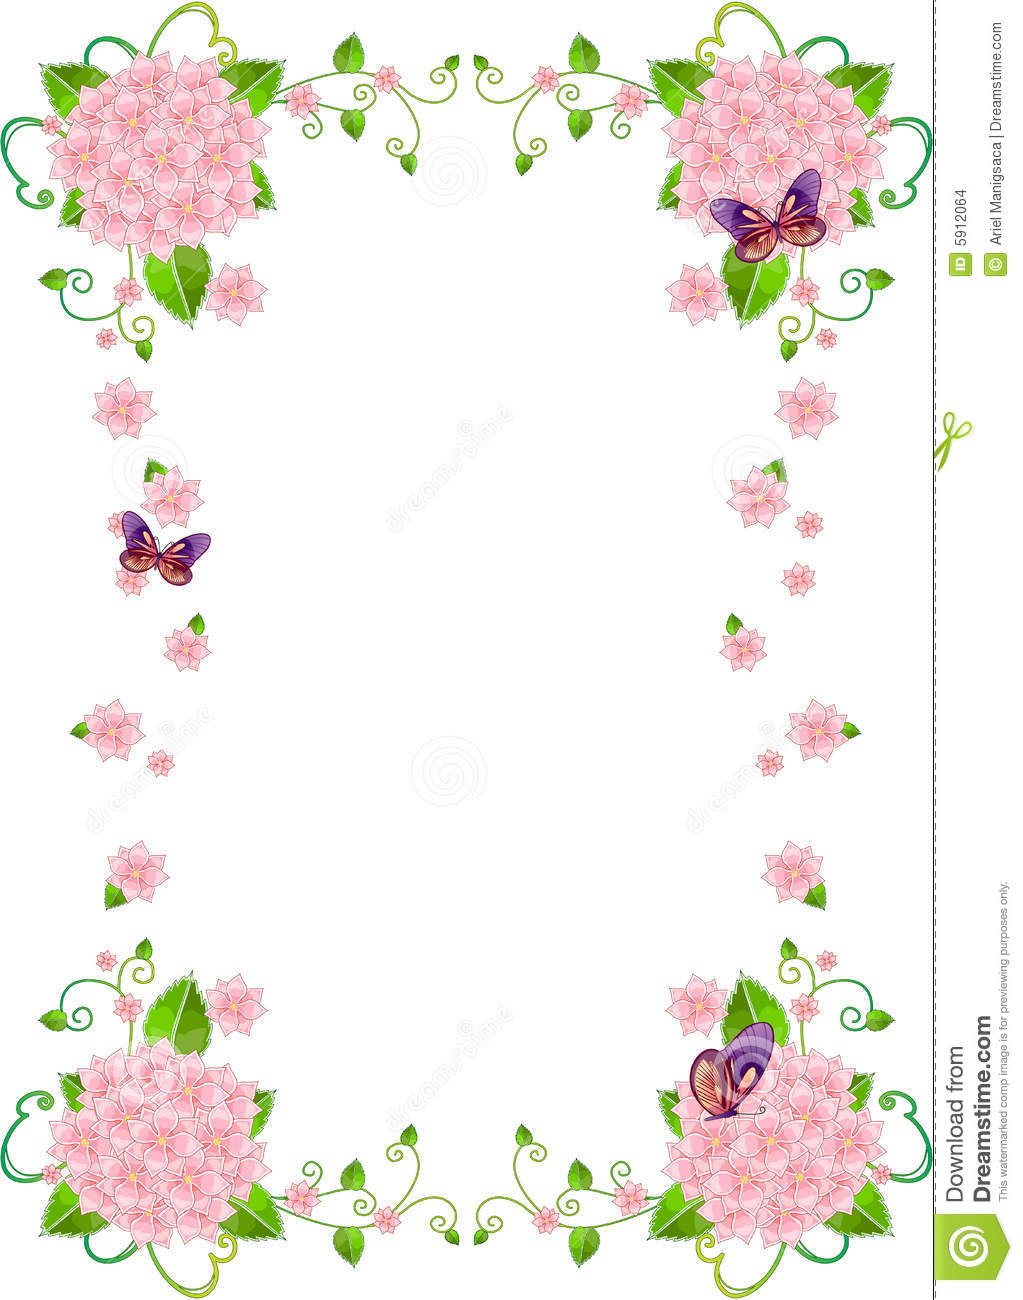 united states 4 corners area with Stock Images Flower Frame Background Border Image5912064 on Four Corners moreover Royalty Free Stock Photography Baby Border Boy Image14569727 moreover 3D Shape Attributes 1079958 likewise Surveying Four Corners During American additionally Four Corners  Florida.